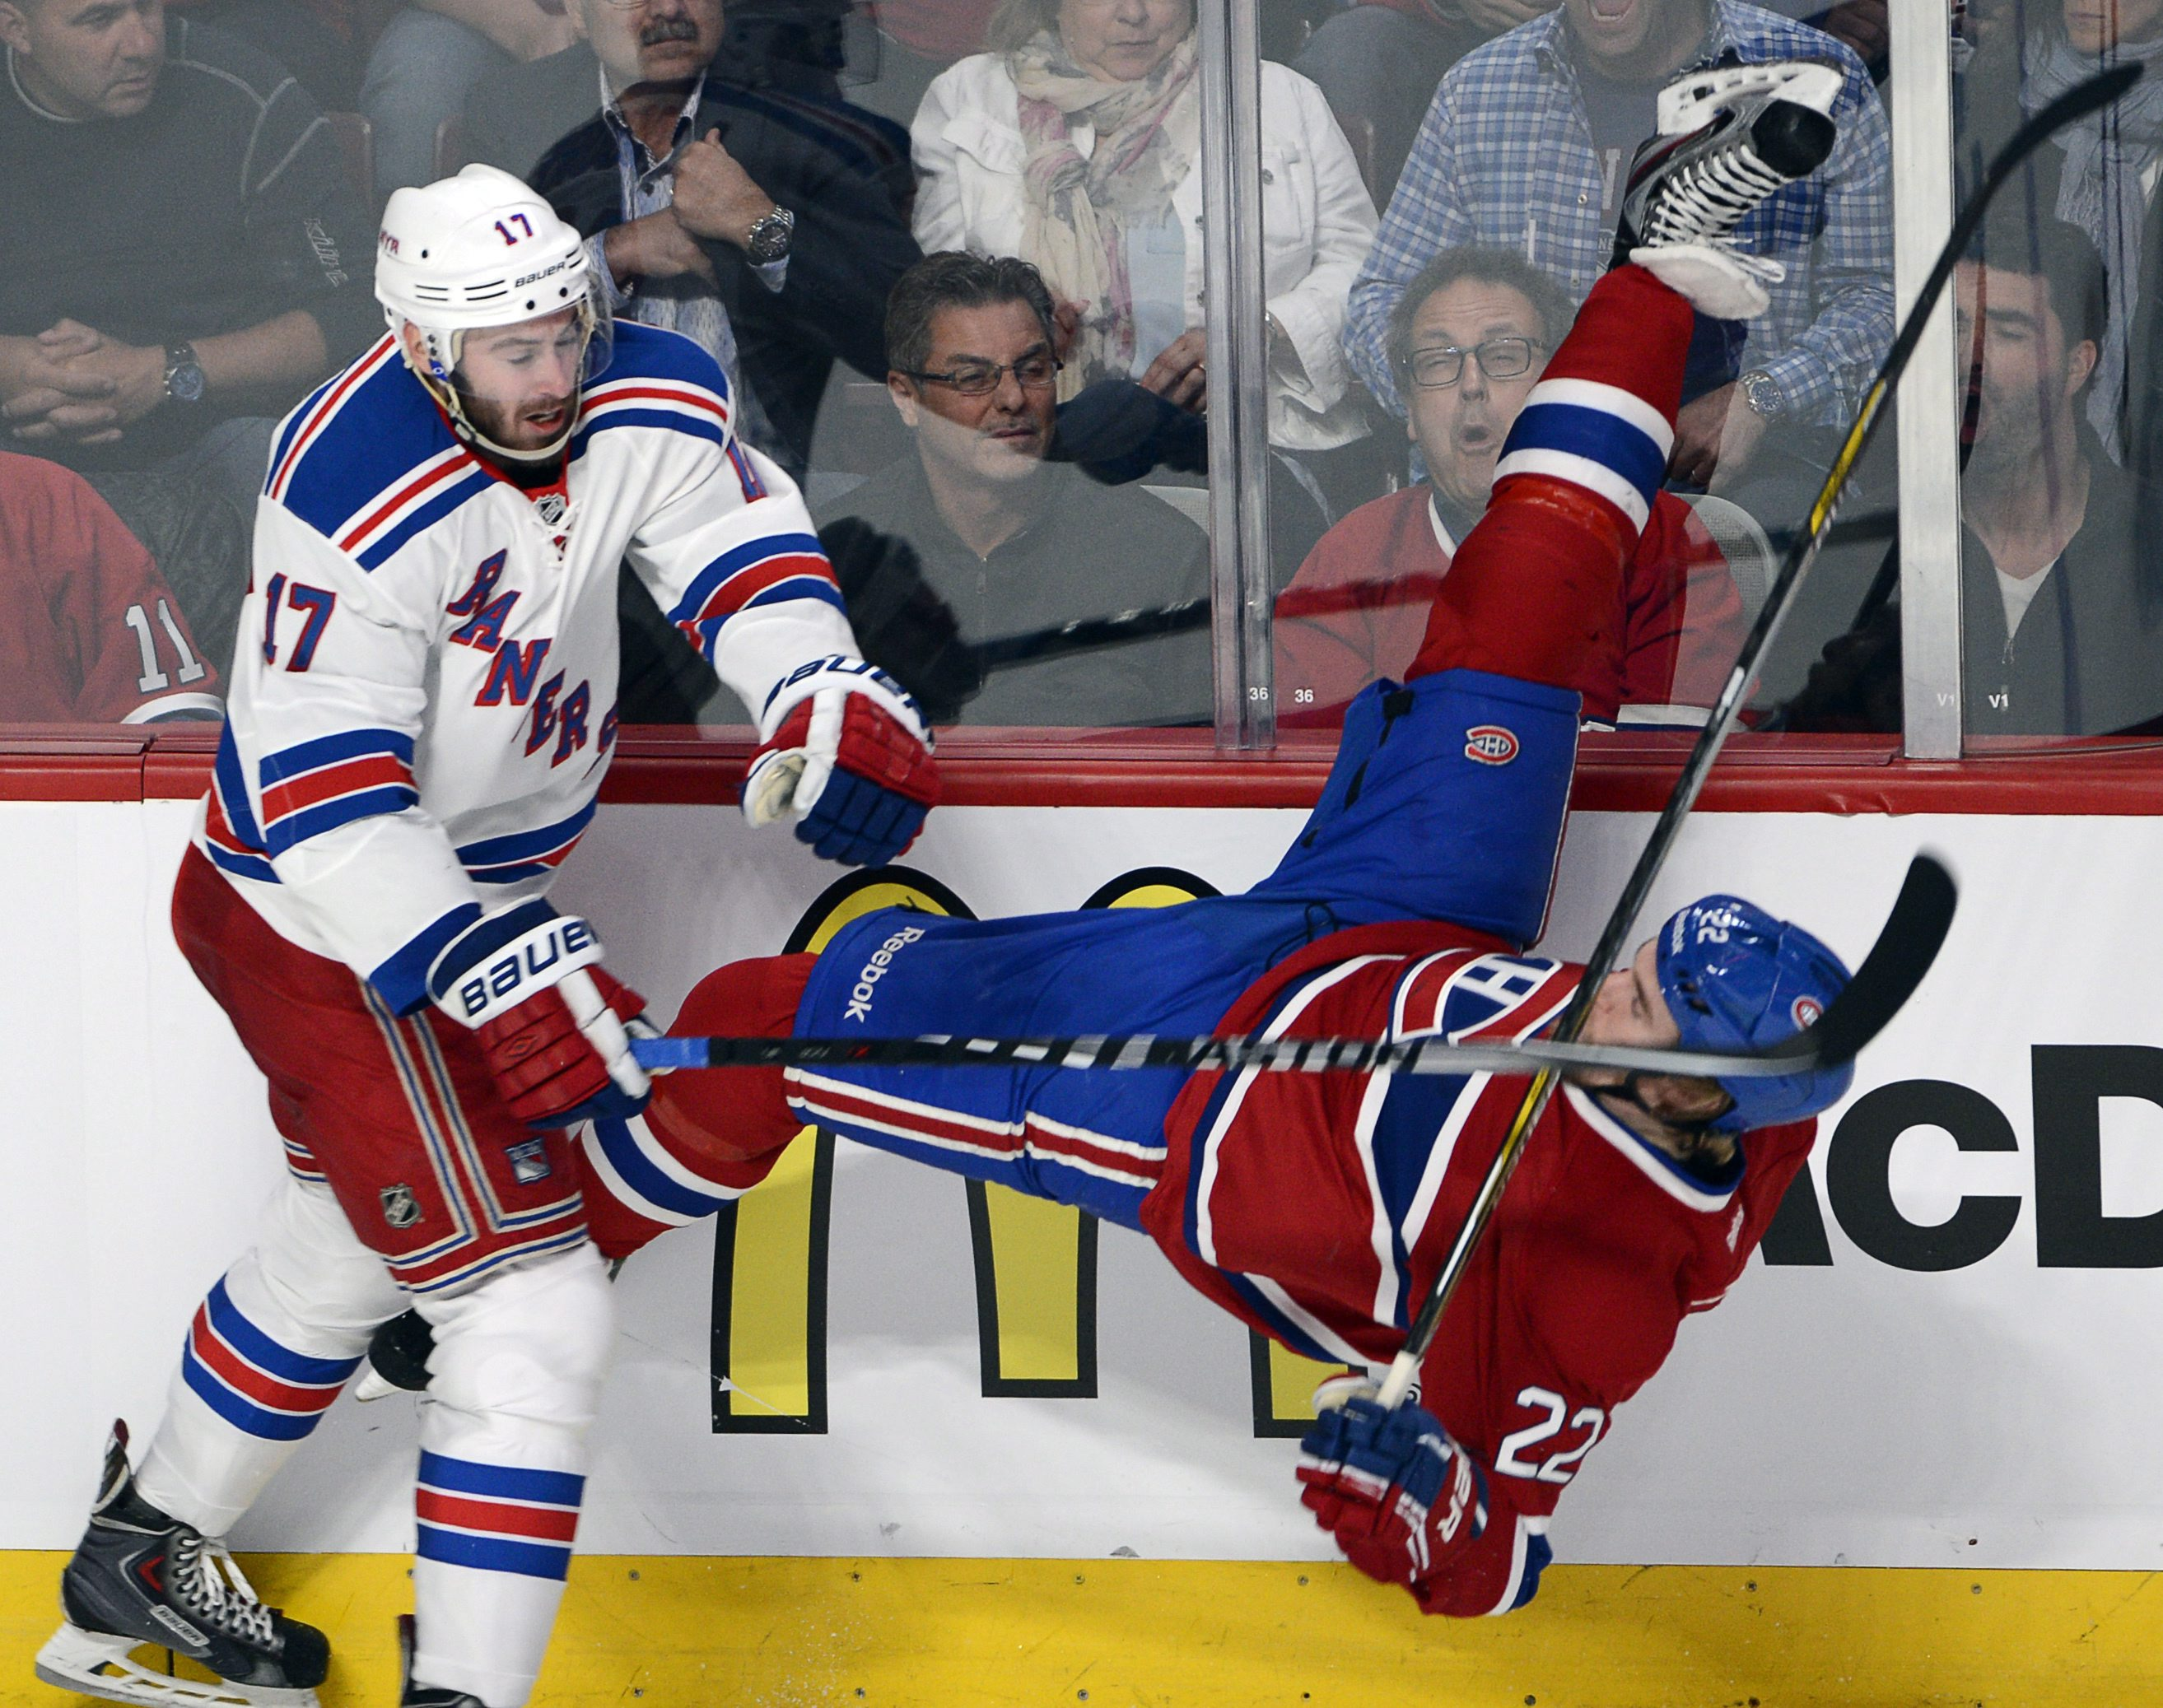 NHL Makes Progress On Concussions, But Needs To Do More To Protect Players From Themselves